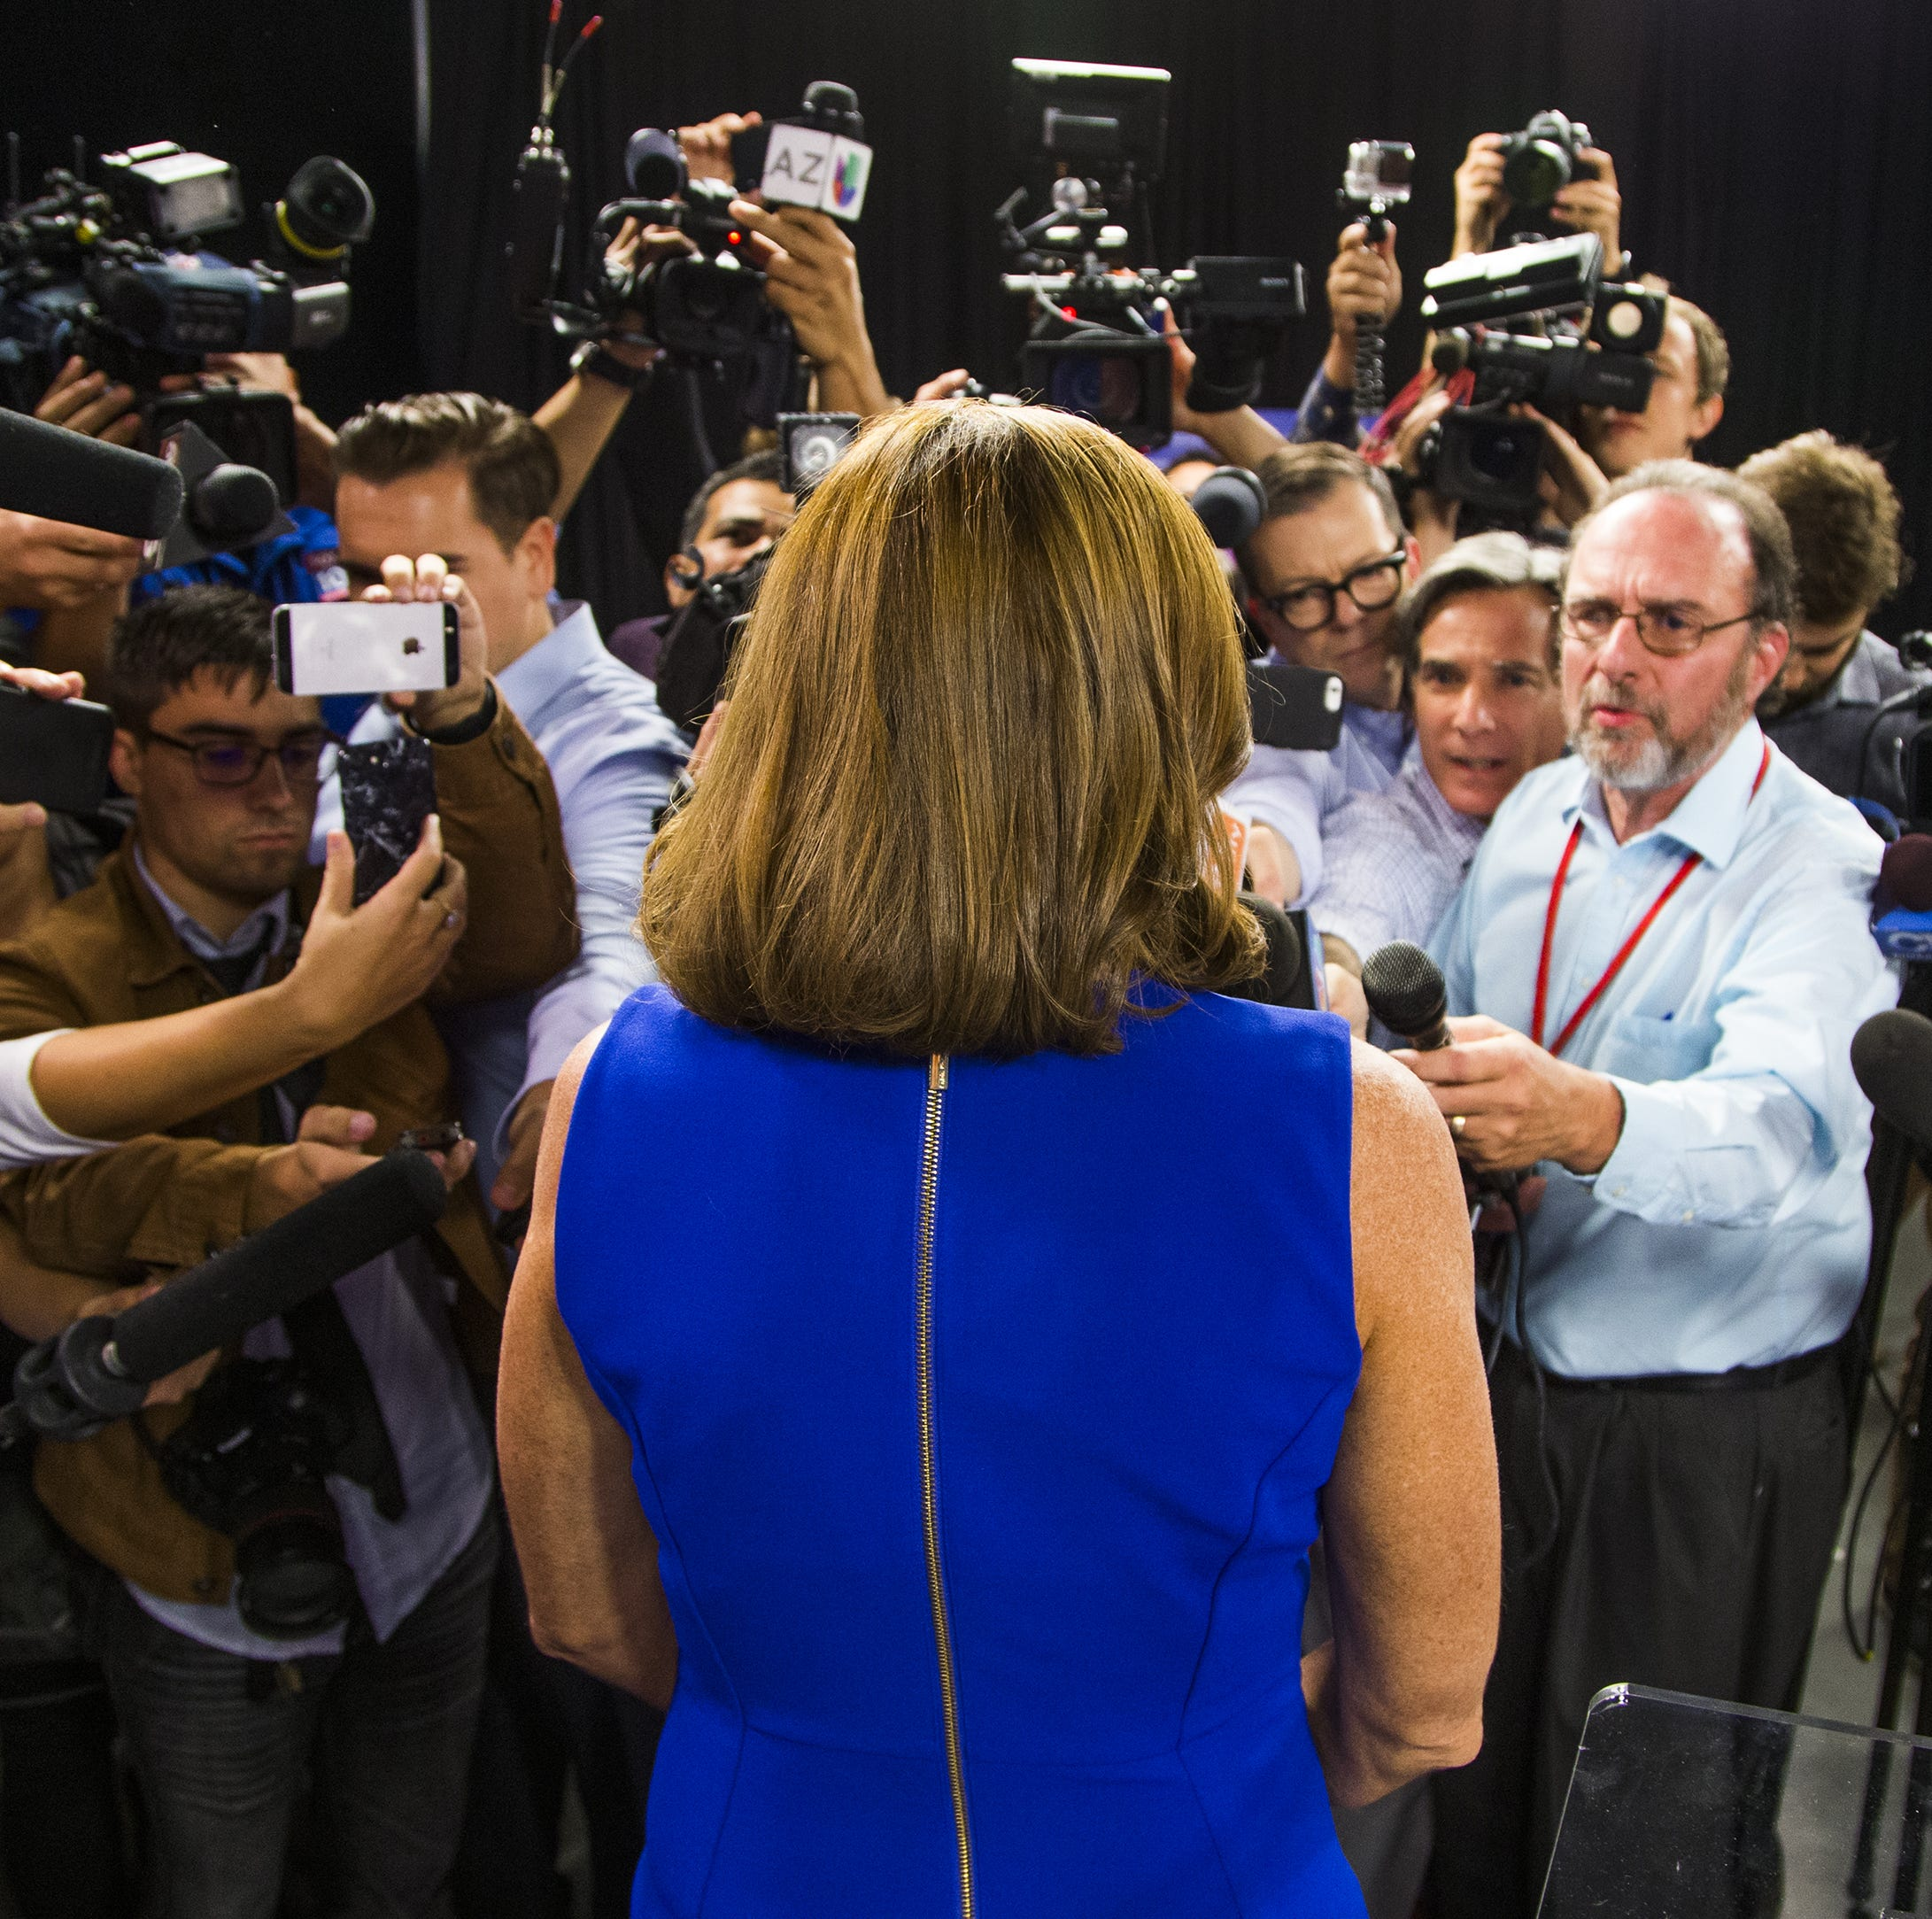 Kyrsten Sinema was a robot. Martha McSally was over-caffeinated. So who won the debate?